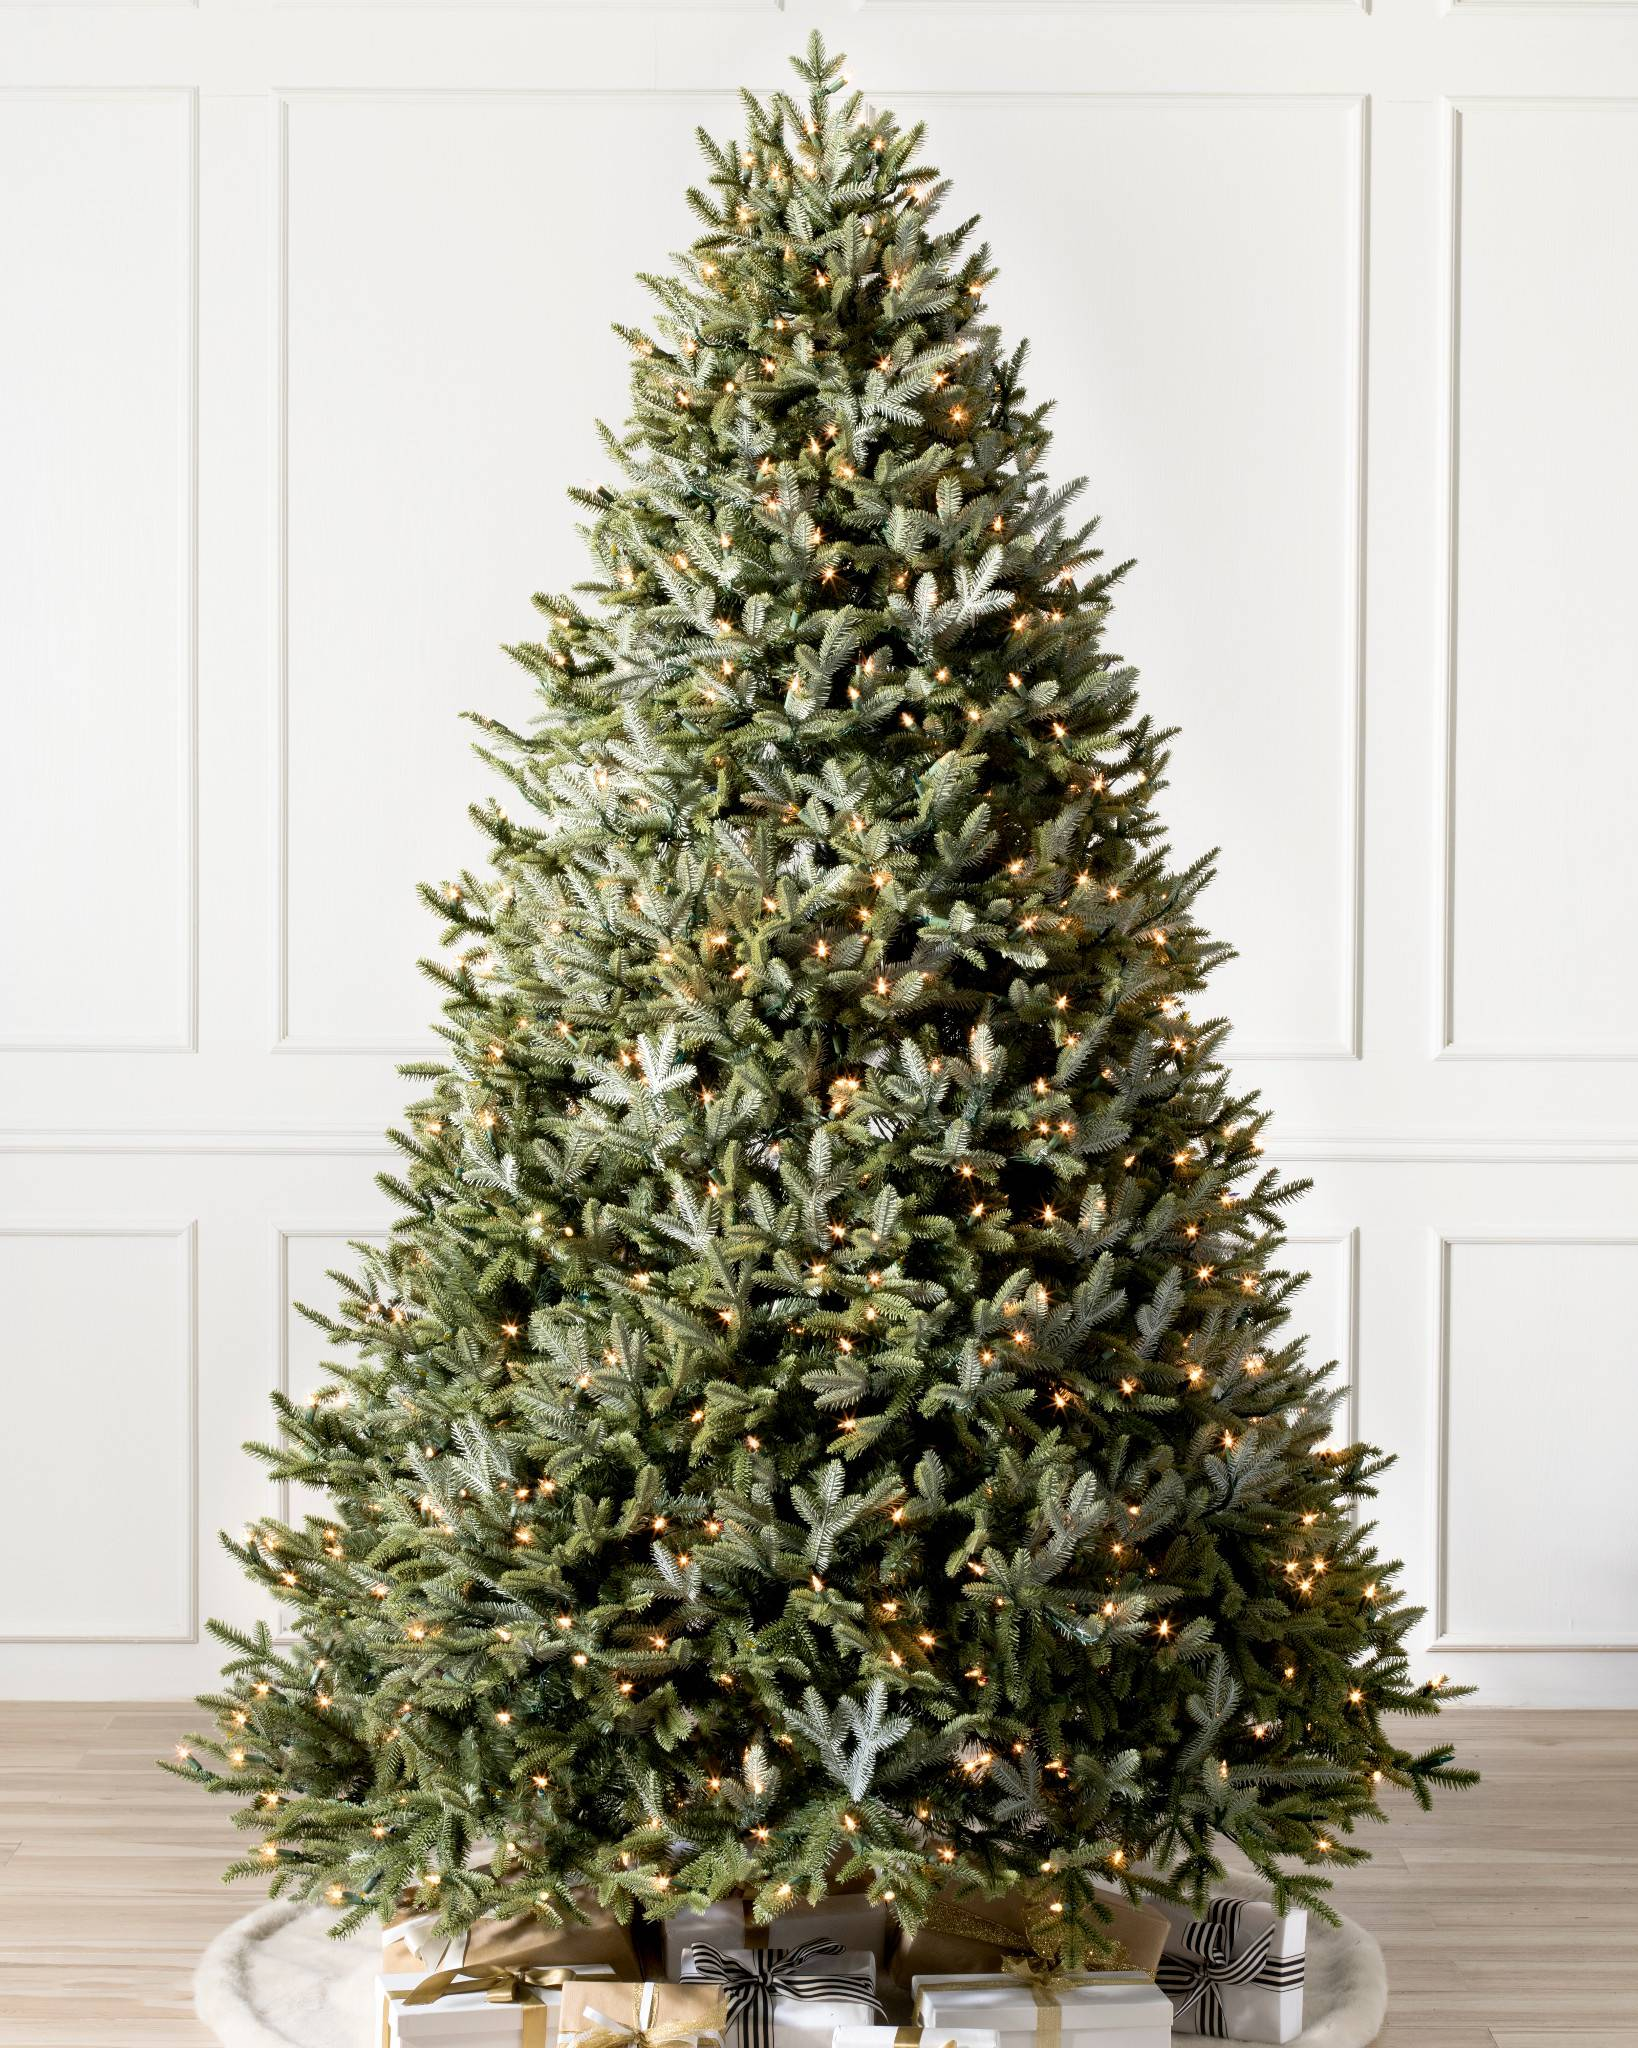 bh fraser fir tree 1 - Christmas Tree With Lights